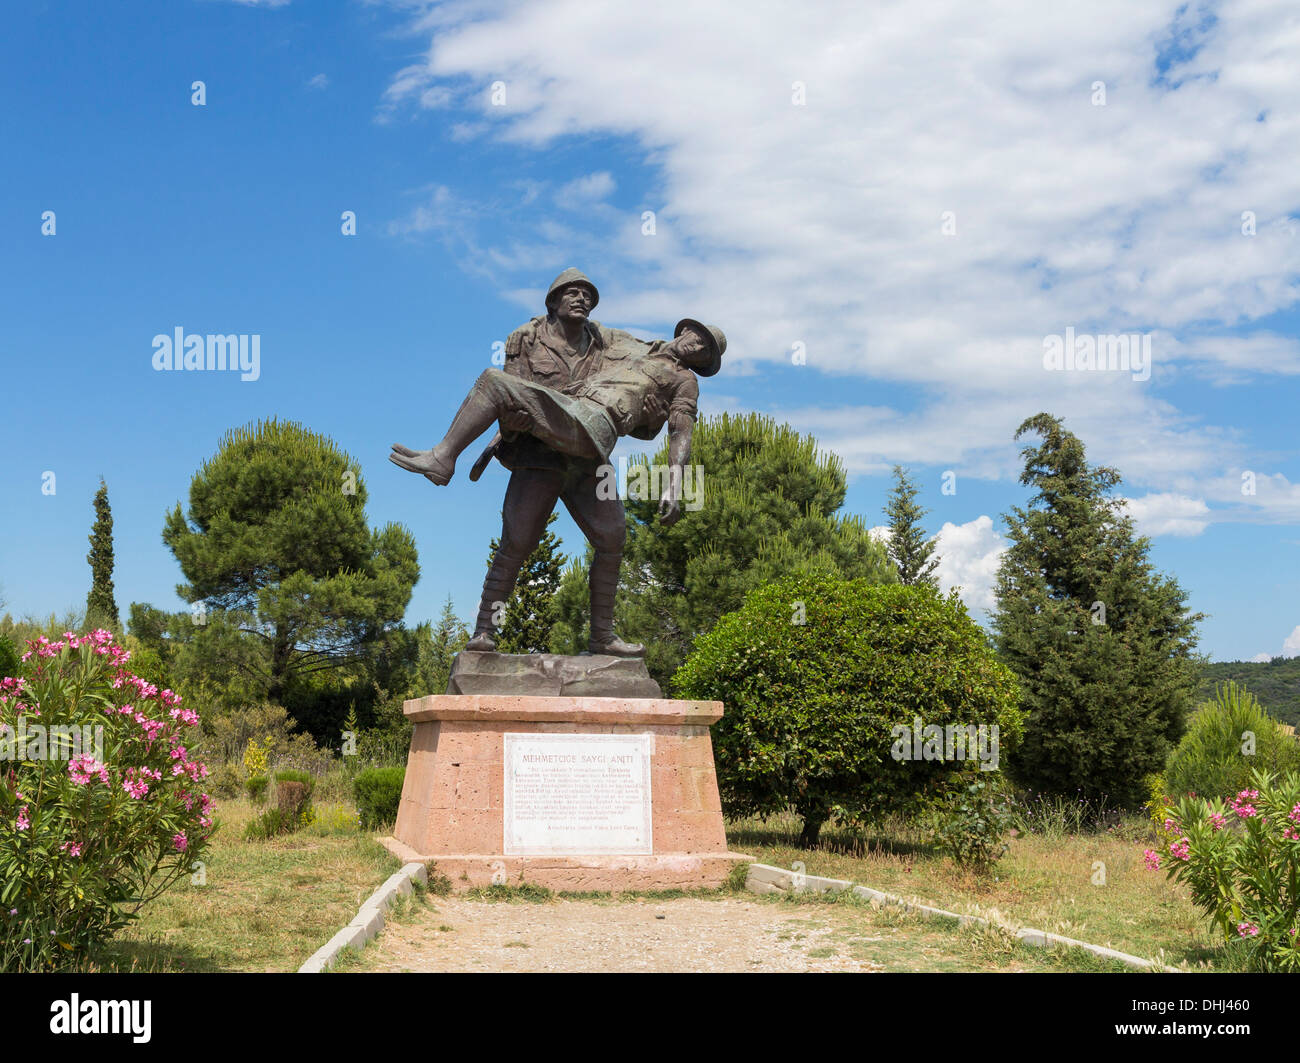 Turkish soldier carrying a wounded Allied soldier comrade in a WW1 Gallipoli campaign memorial statue, Anzac Cove, Turkey - Stock Image